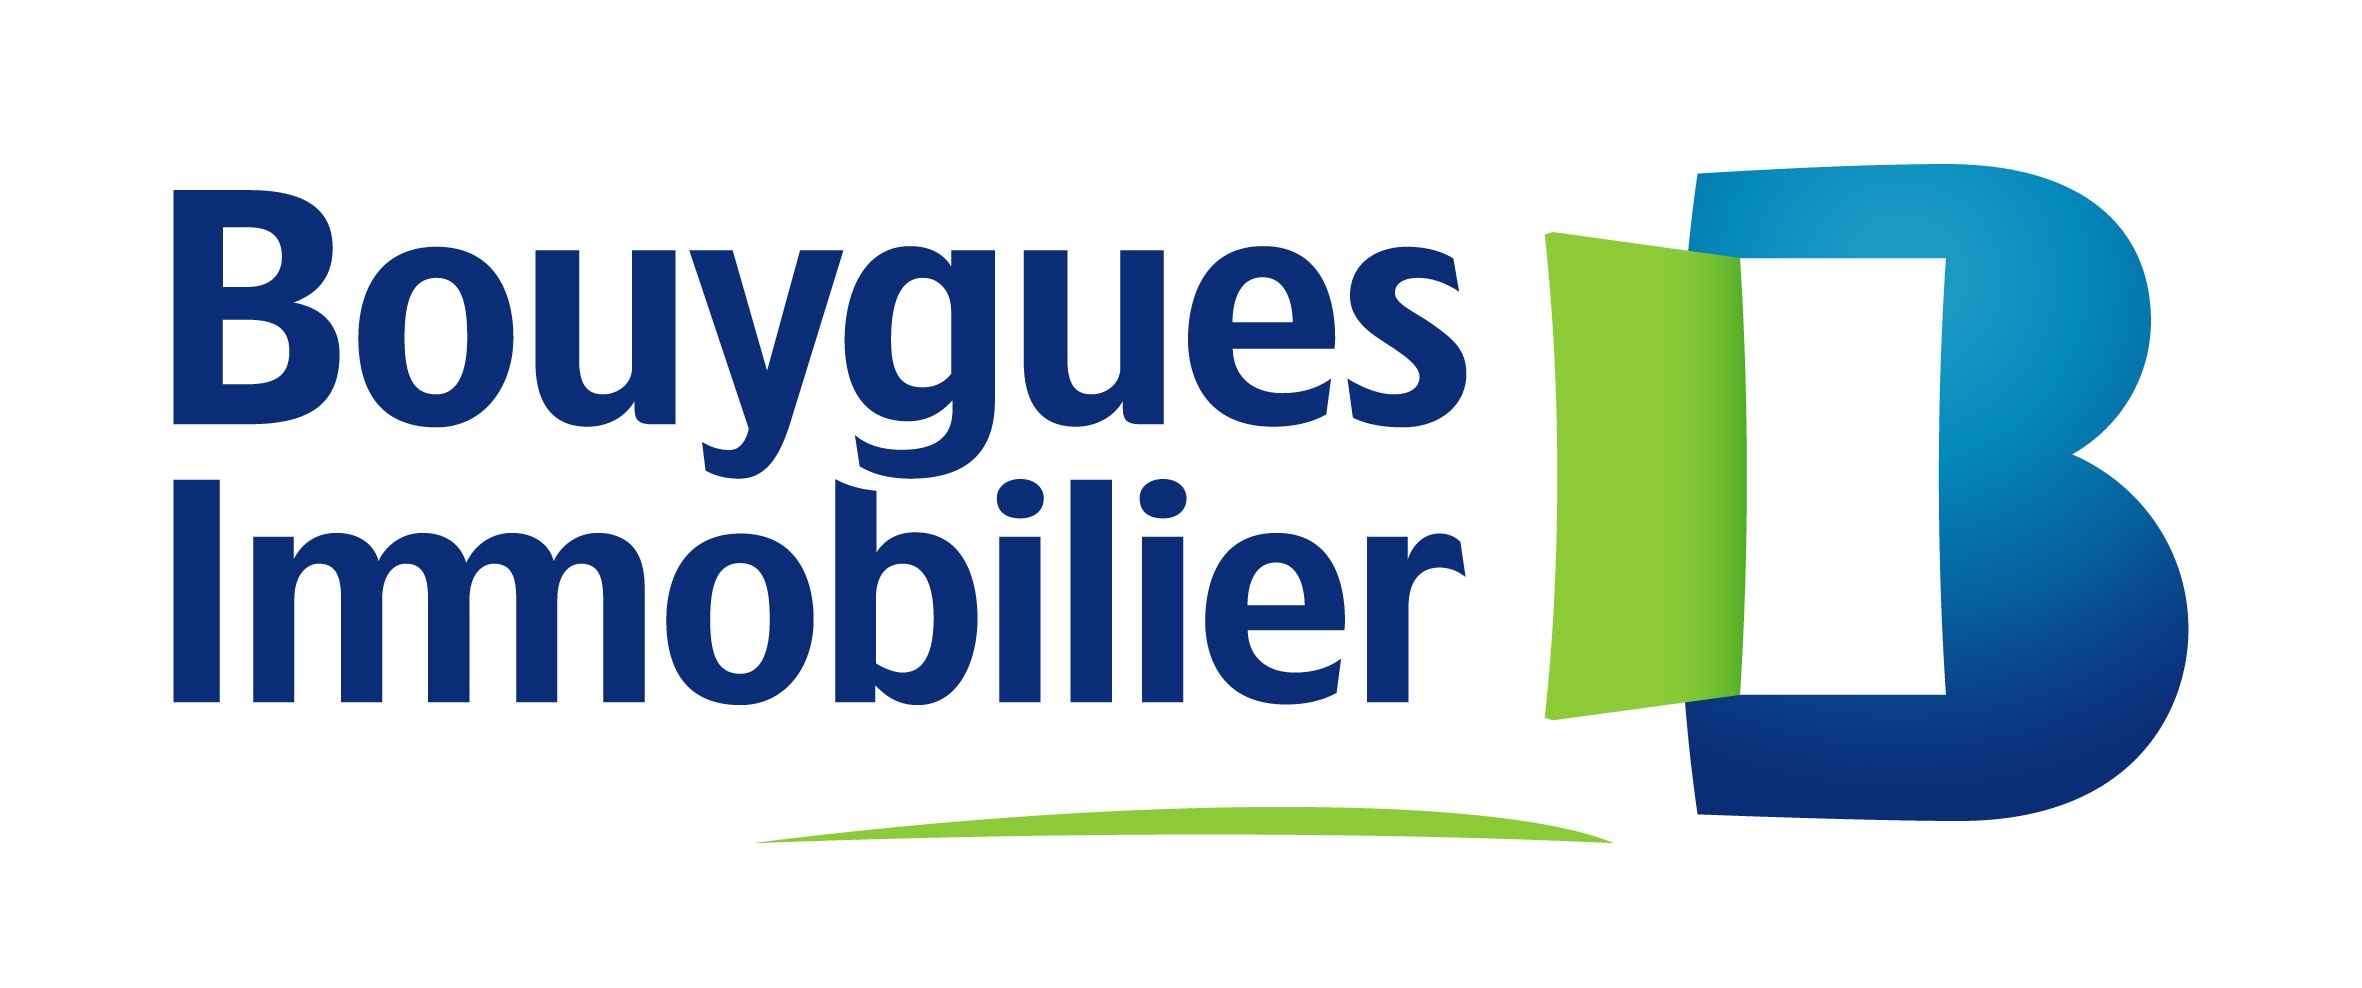 Bouygues immobilier for Immo immobilier